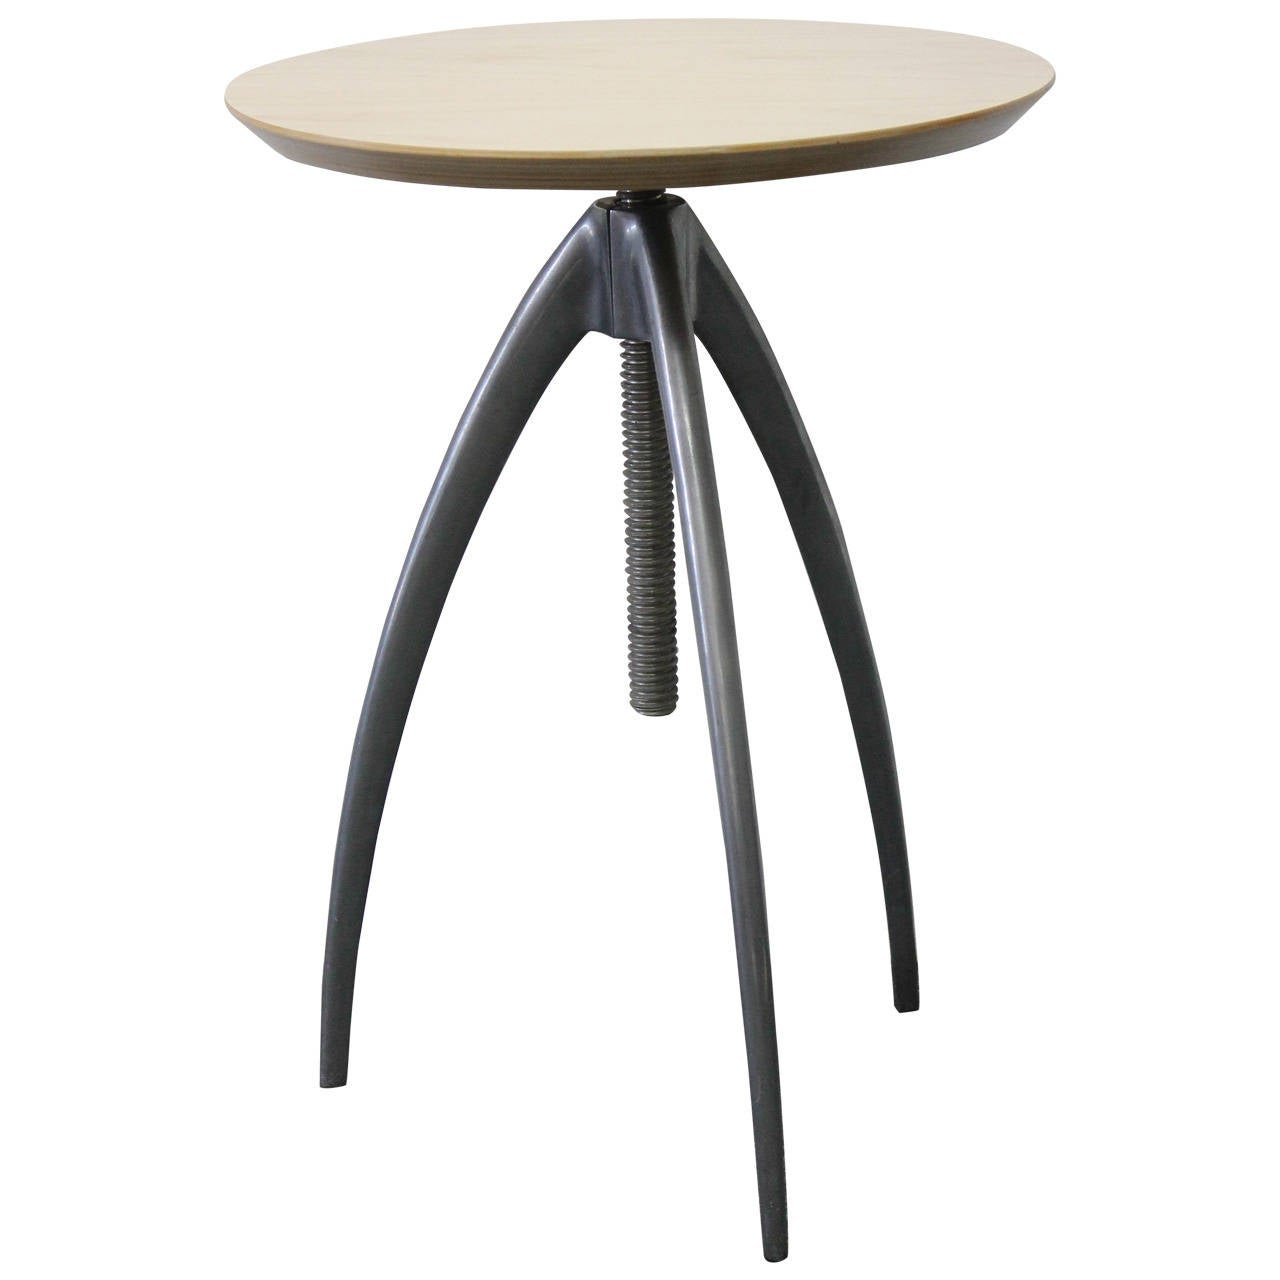 philippe starck aleph stool at 1stdibs. Black Bedroom Furniture Sets. Home Design Ideas